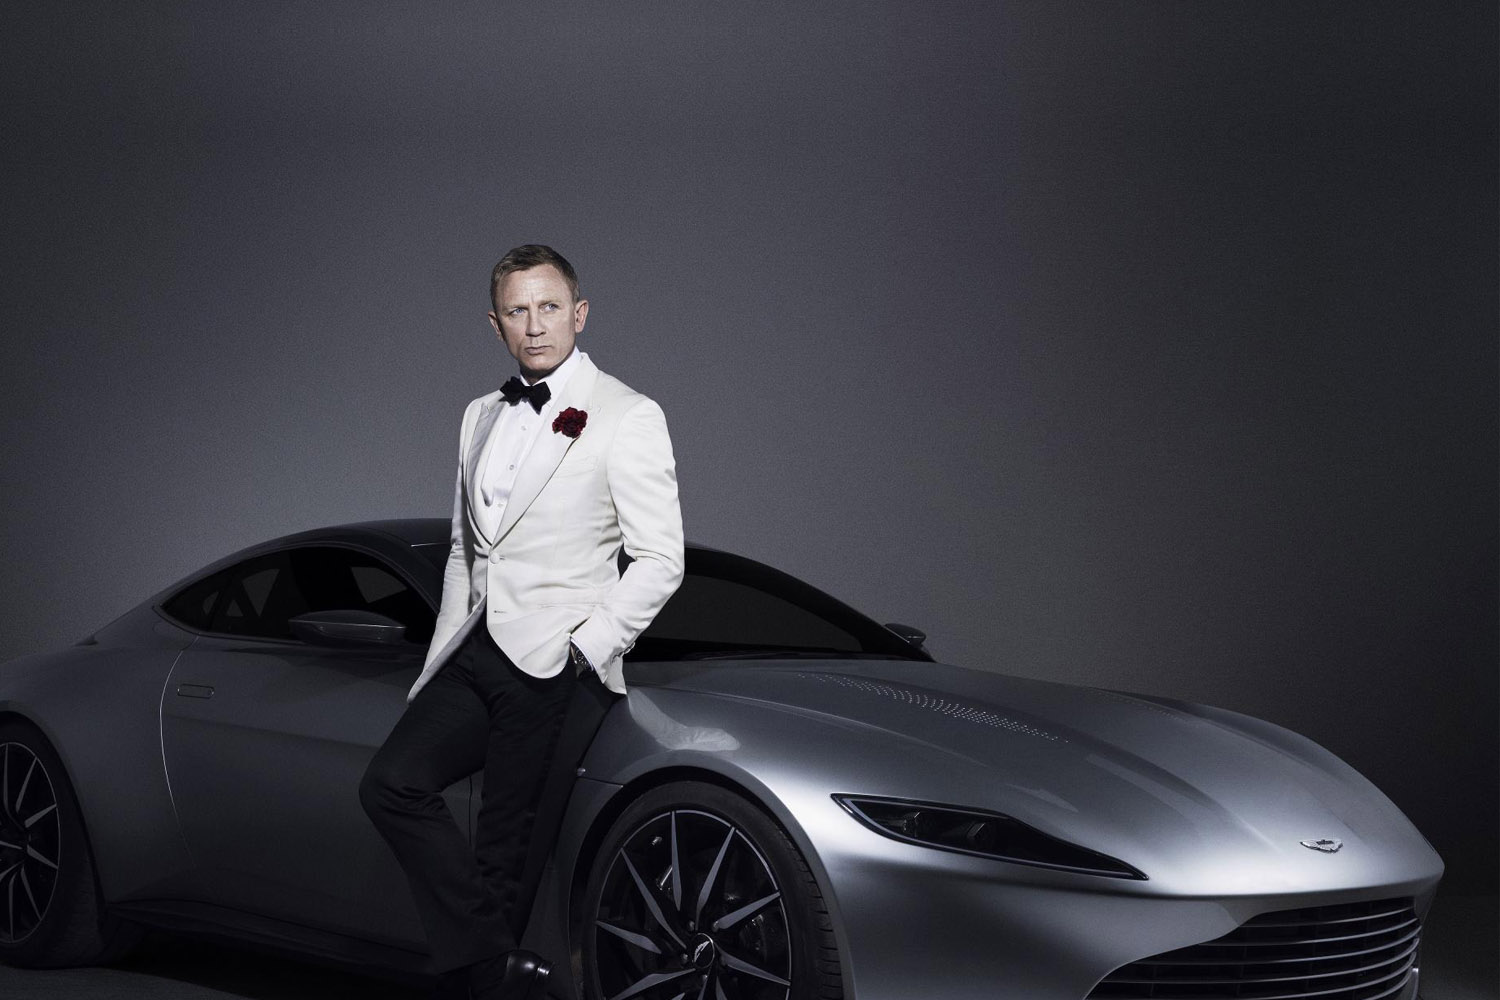 Someone Bought The Bond Car But They Can't Drive It On Public Roads